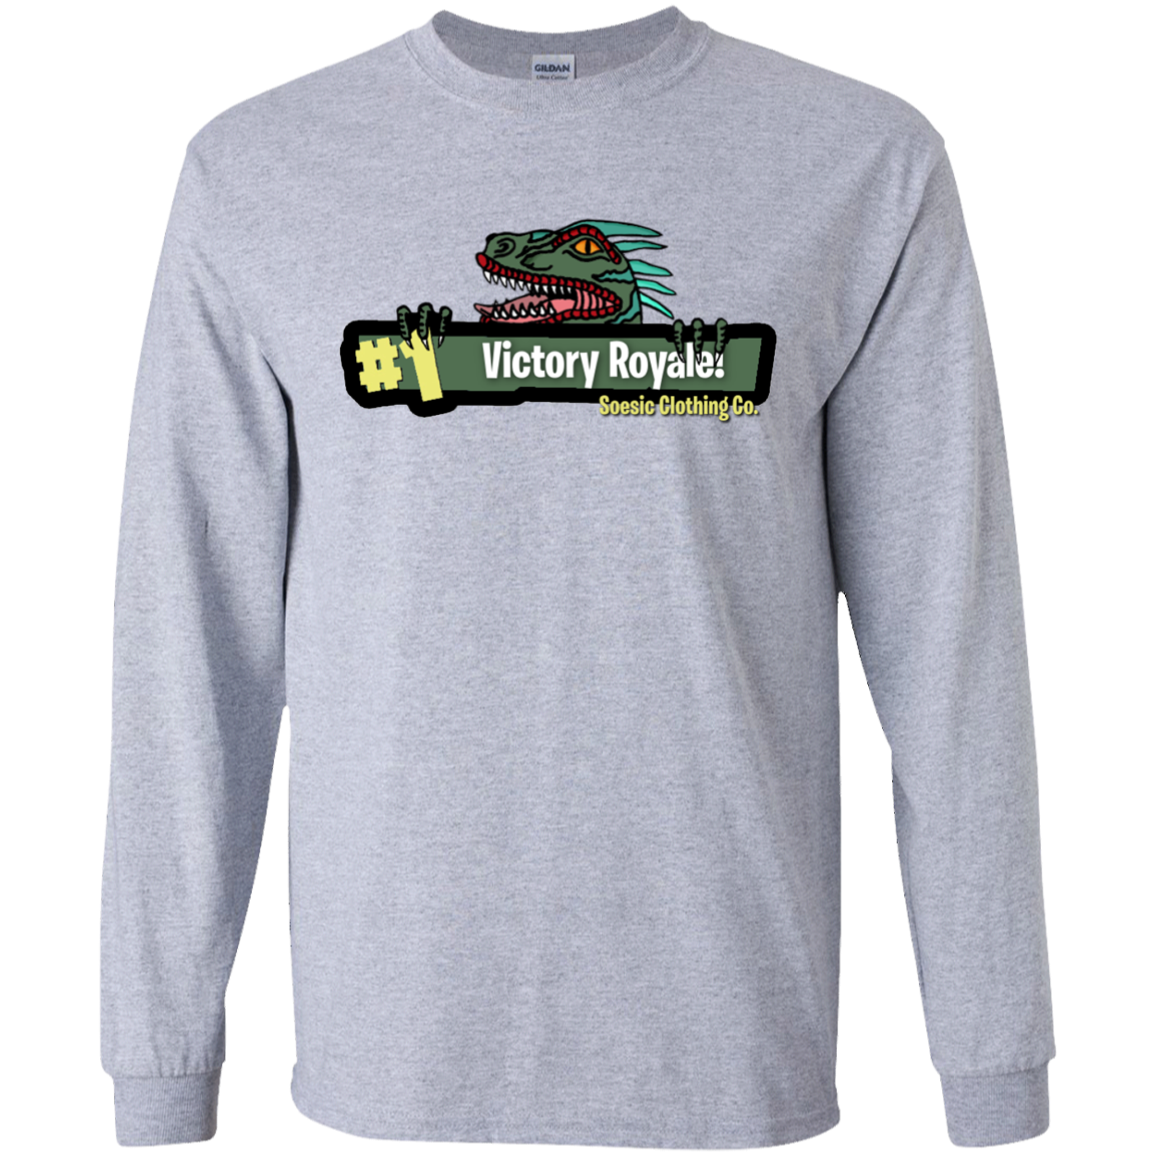 Soesic Victory Royale Fortnite LS T-Shirt in 2020 | Long ...